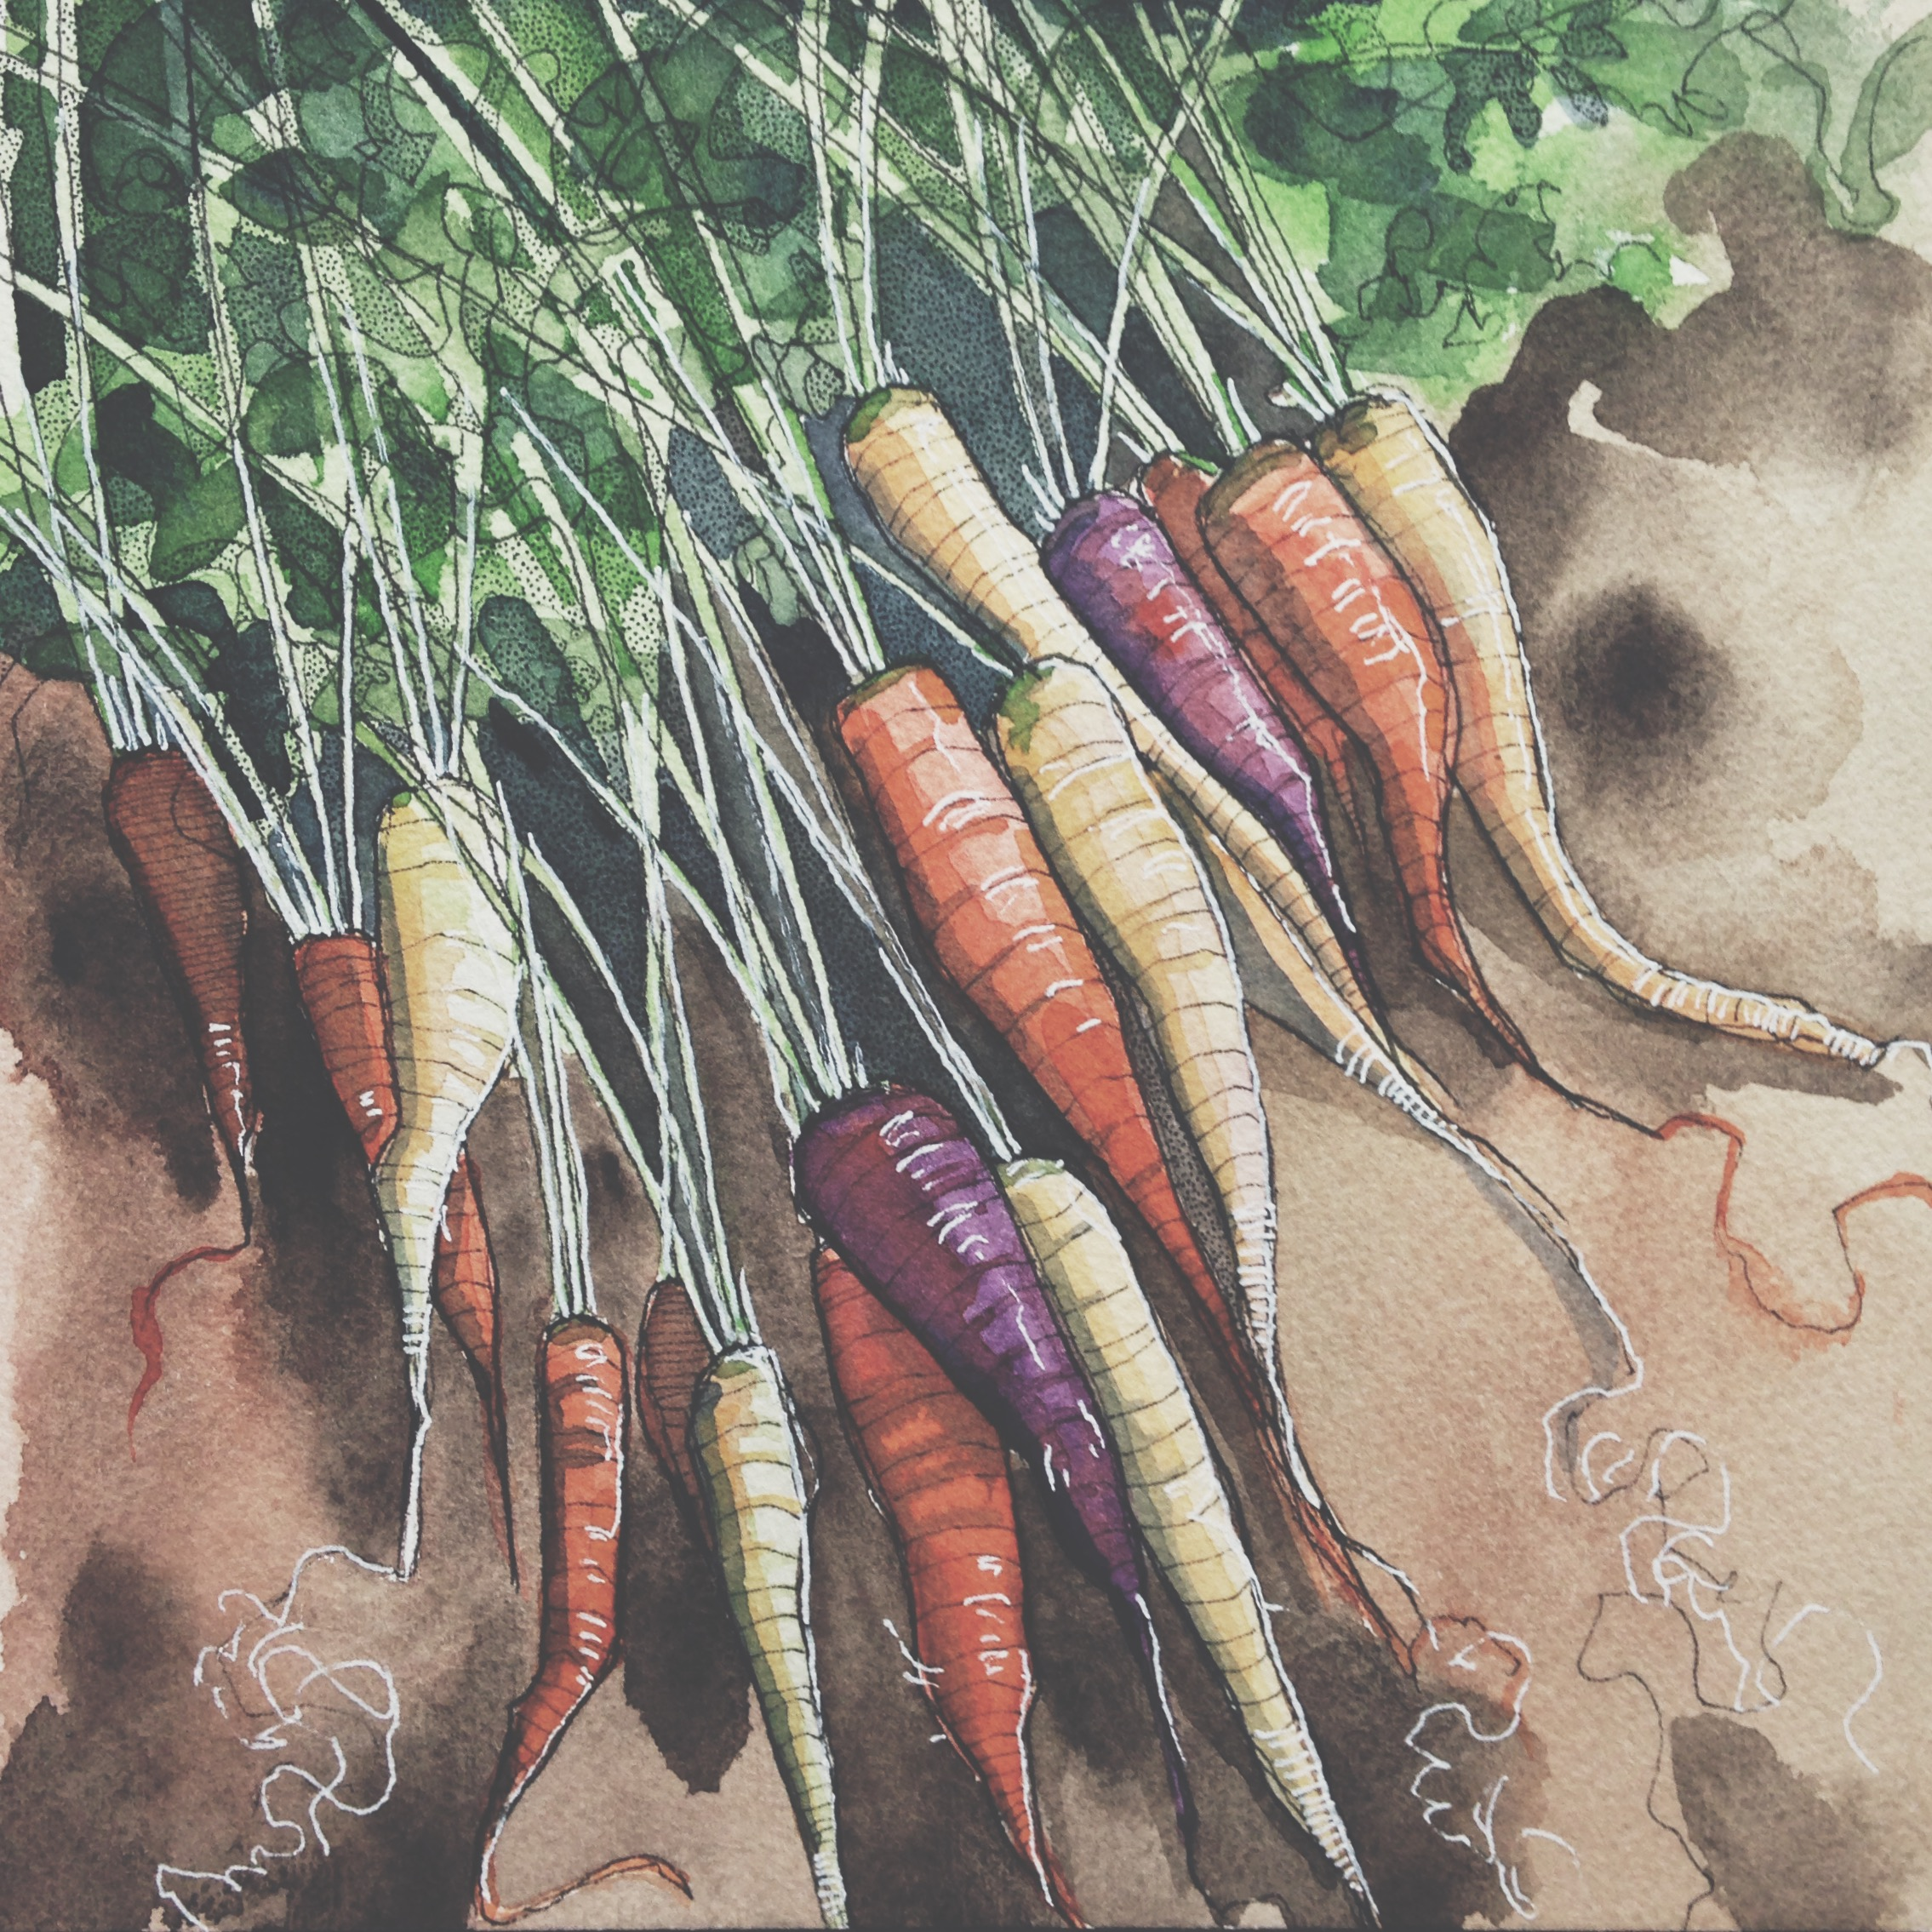 rainbow carrots, pen & watercolour on cold pressed paper, 8x8(in), SOLD, 2016